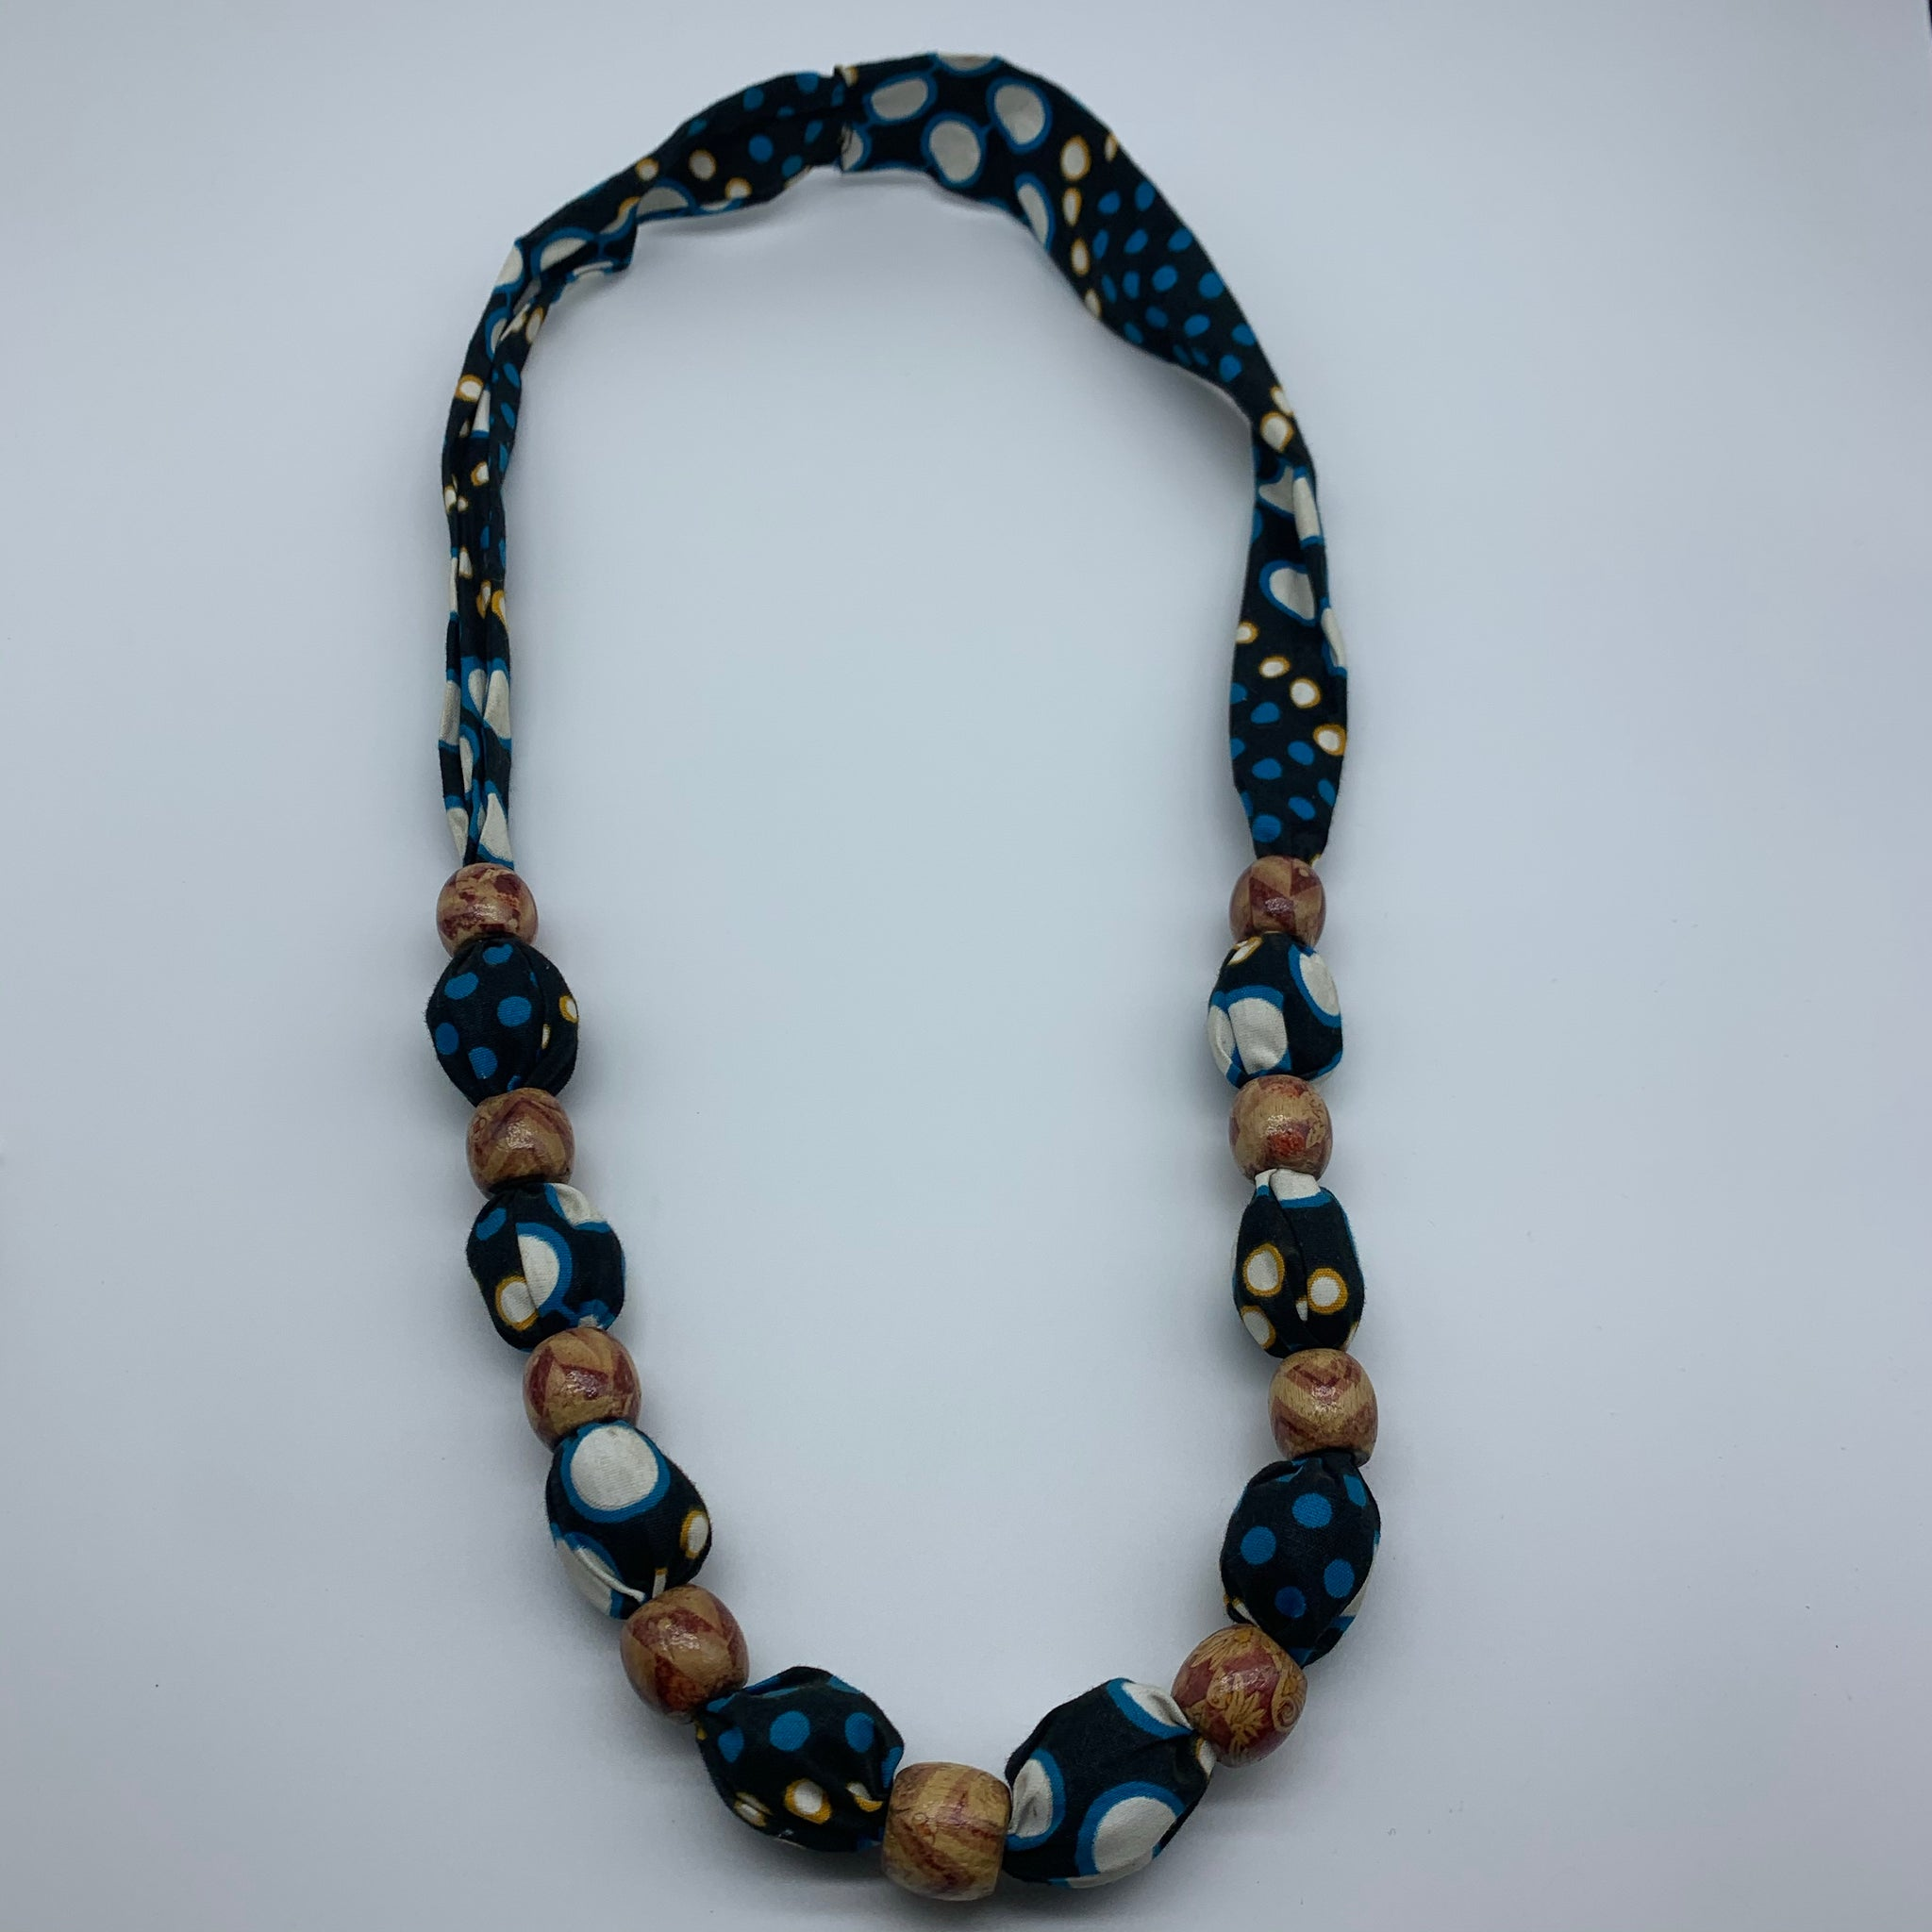 African Print Necklace W/Wooden Beads- L Black Variation